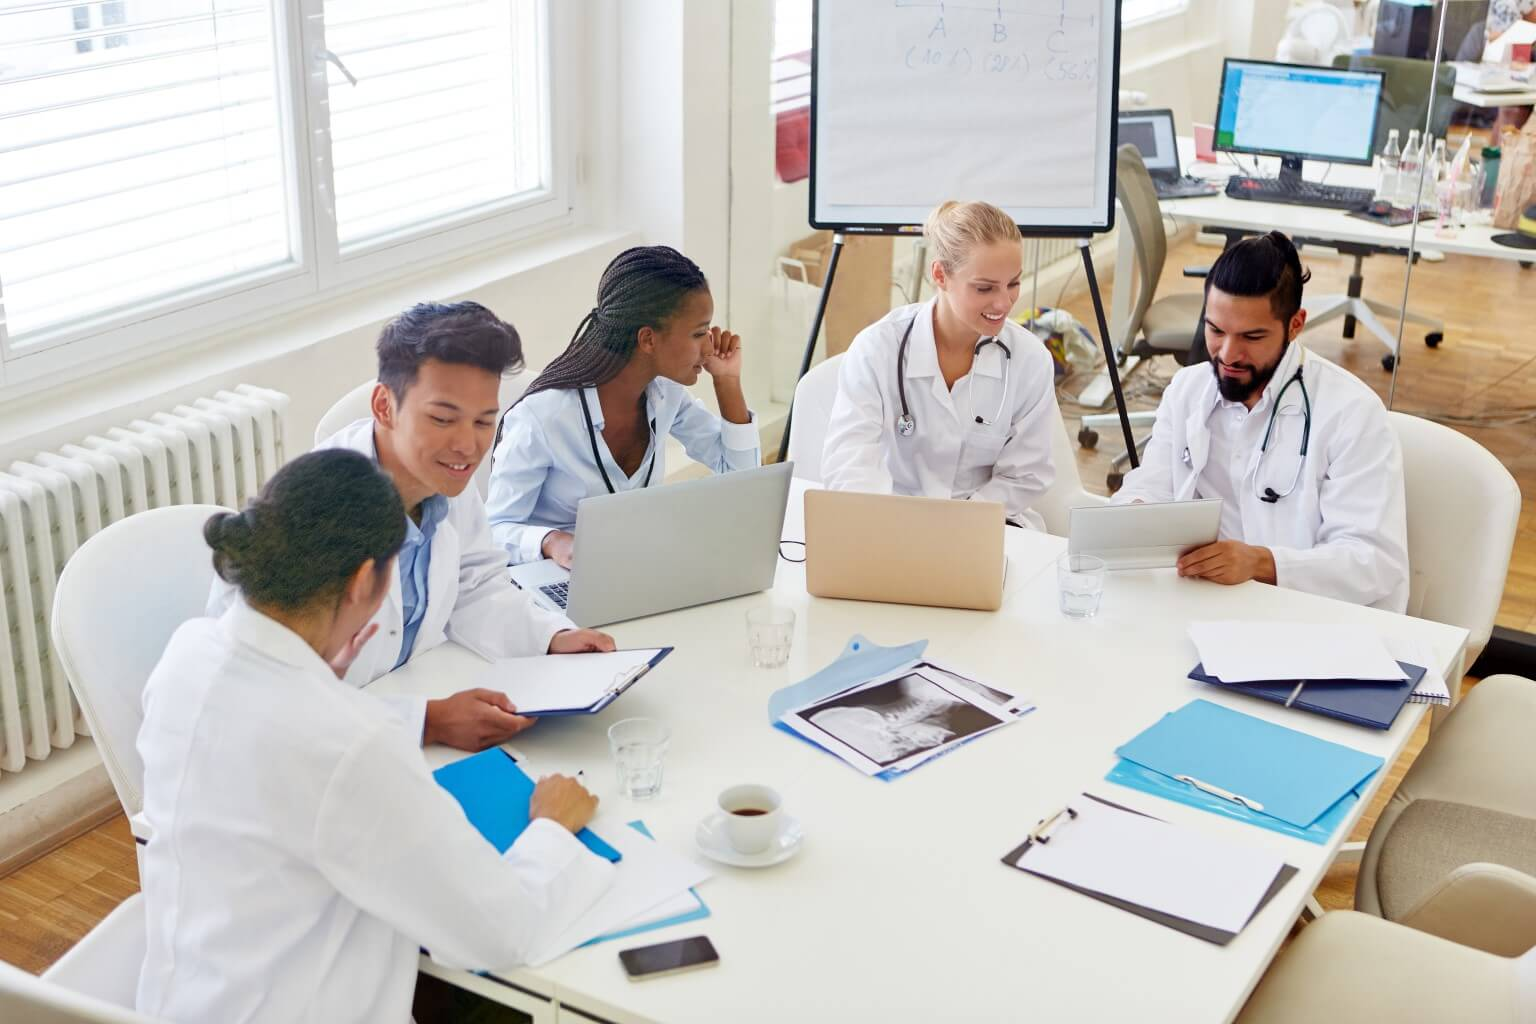 The Federation of Royal Colleges of Physicians approves UpToDate clinical decision support for CPD